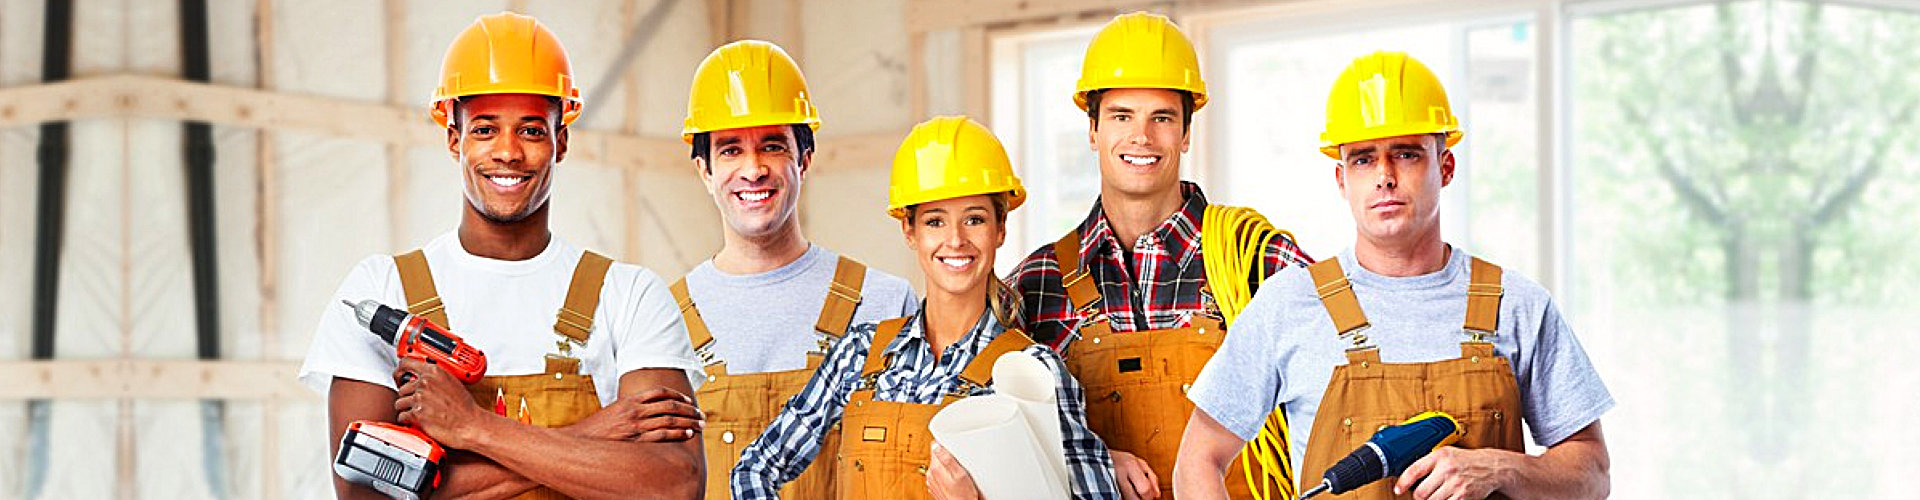 group of construction worker are smiling